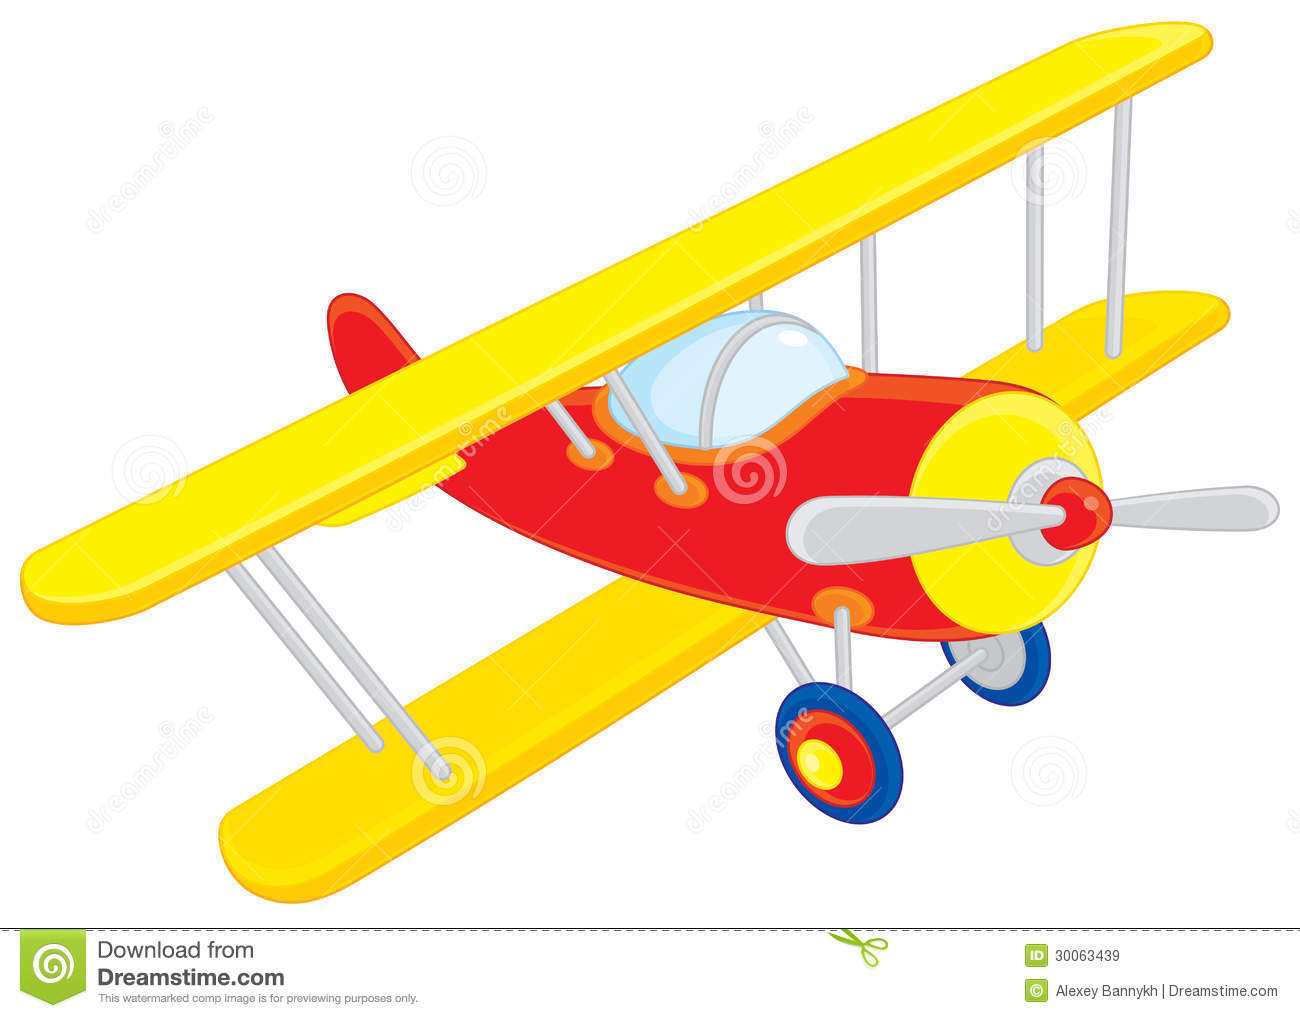 Clipart plane stock free svg free Plane Royalty Free Stock Images - Image: 30063439 svg free